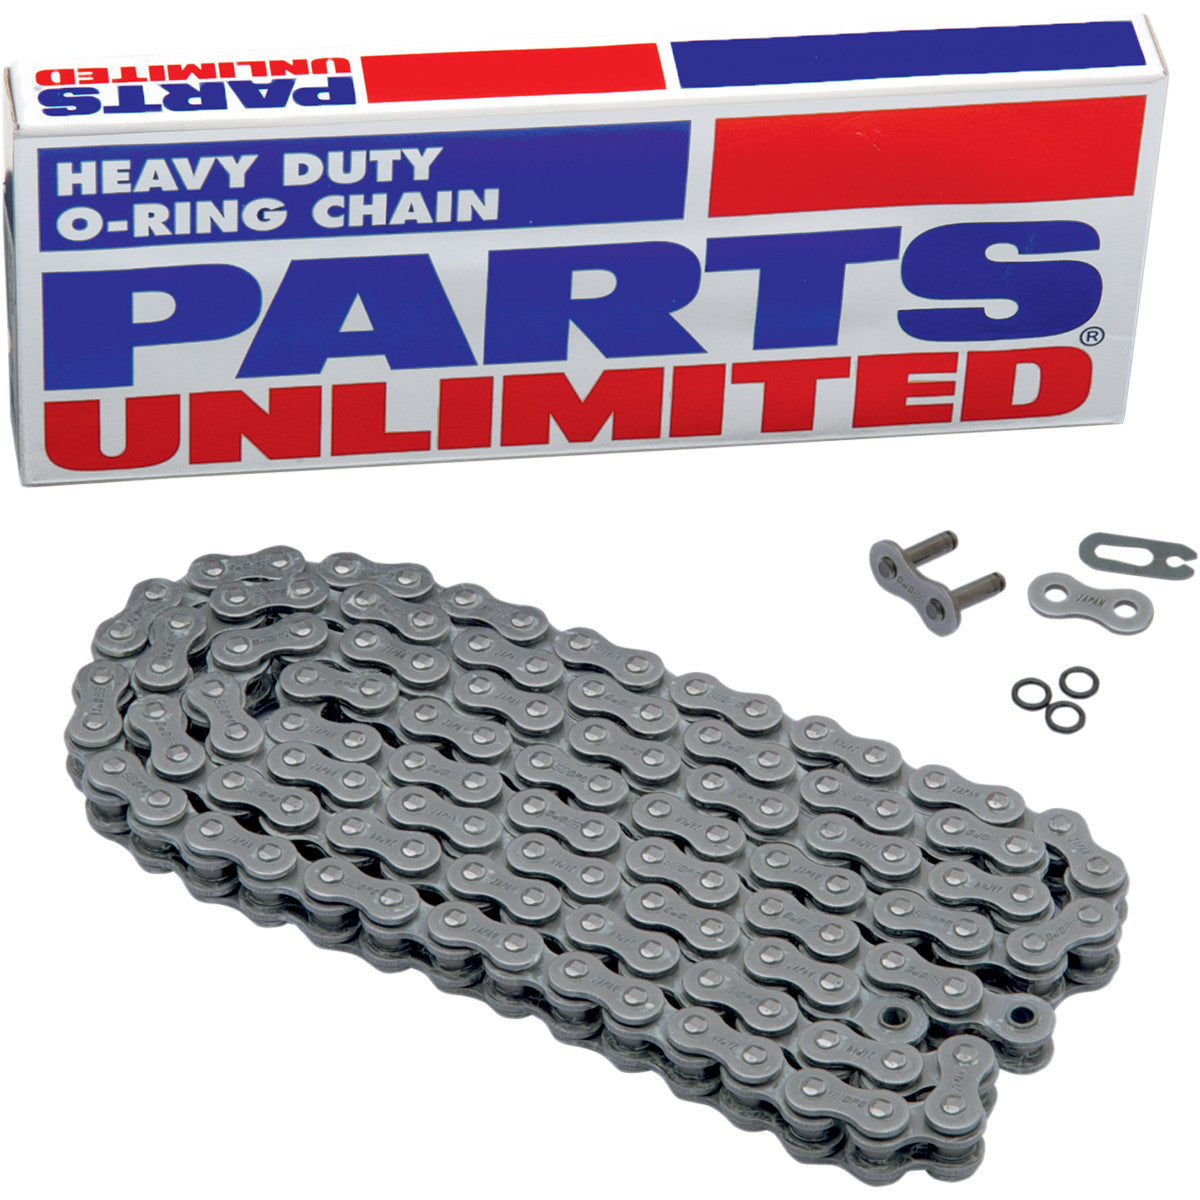 PARTS UNLIMITED-CHAIN CHAIN PU 530 X-RNG X 100F